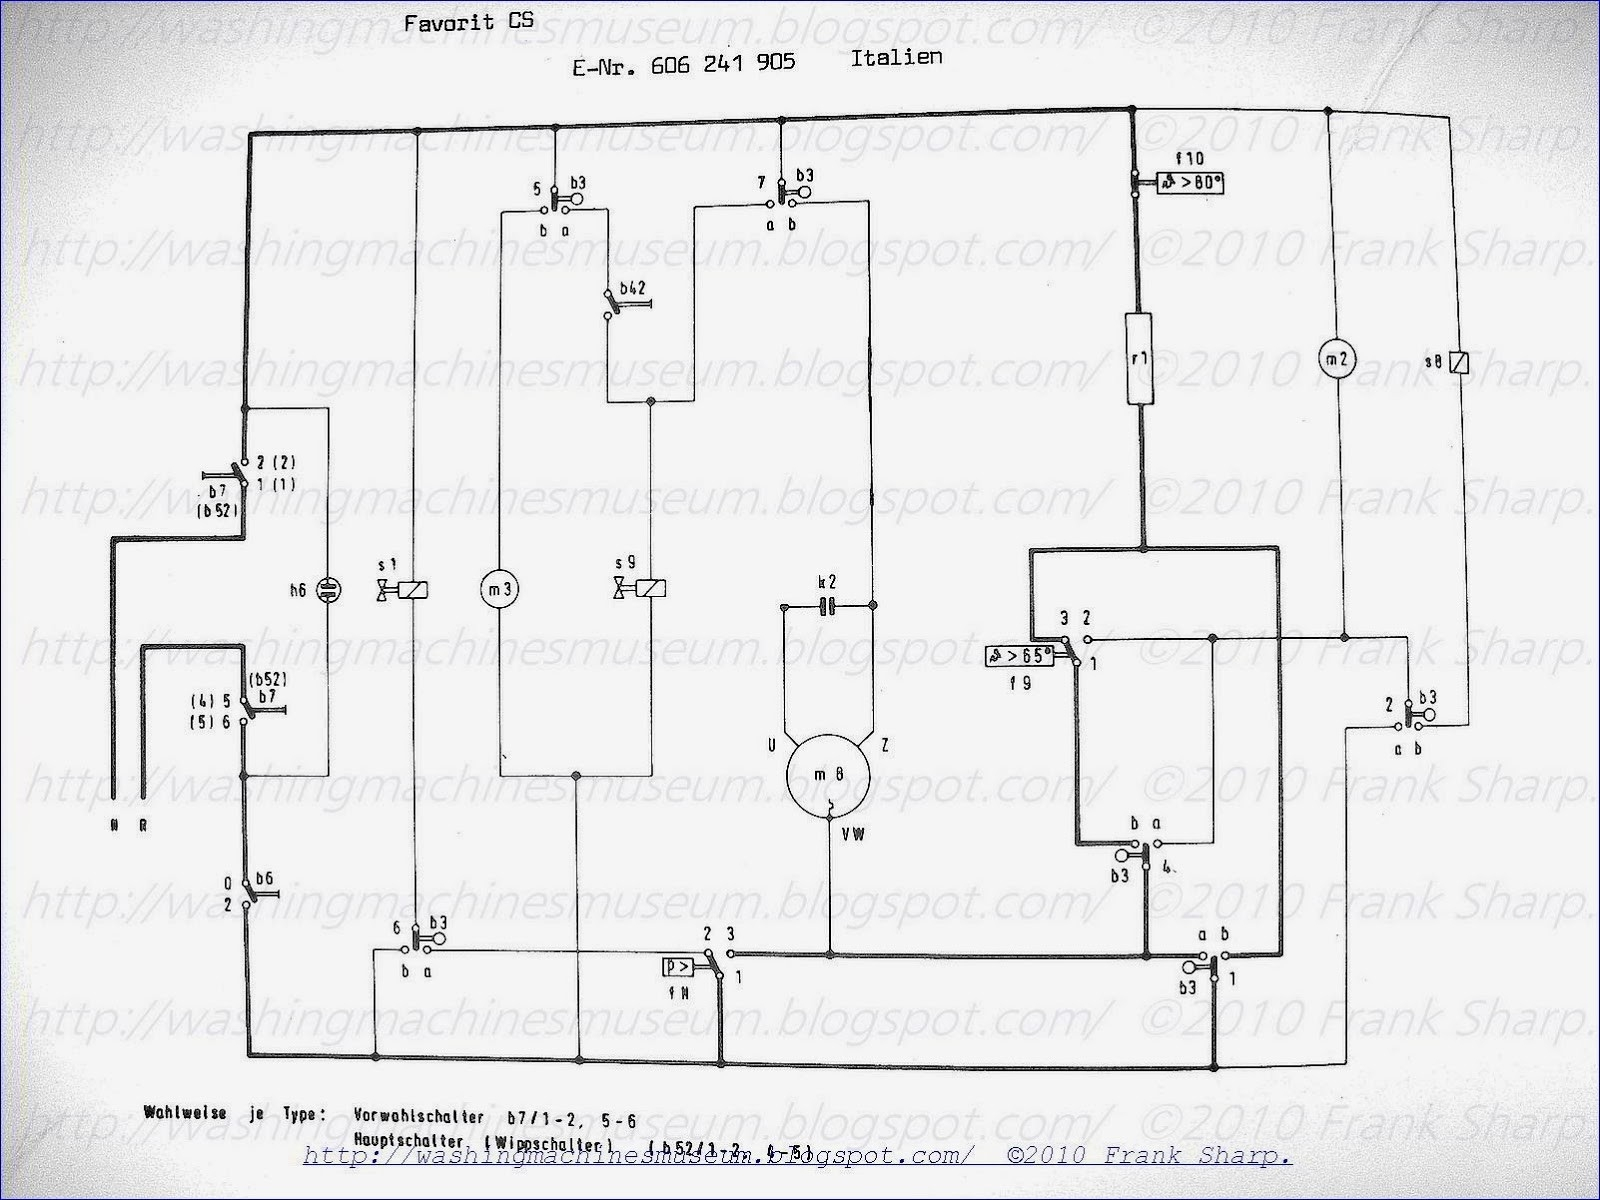 diagram as well as whirlpool dryer schematic wiring diagram wiring